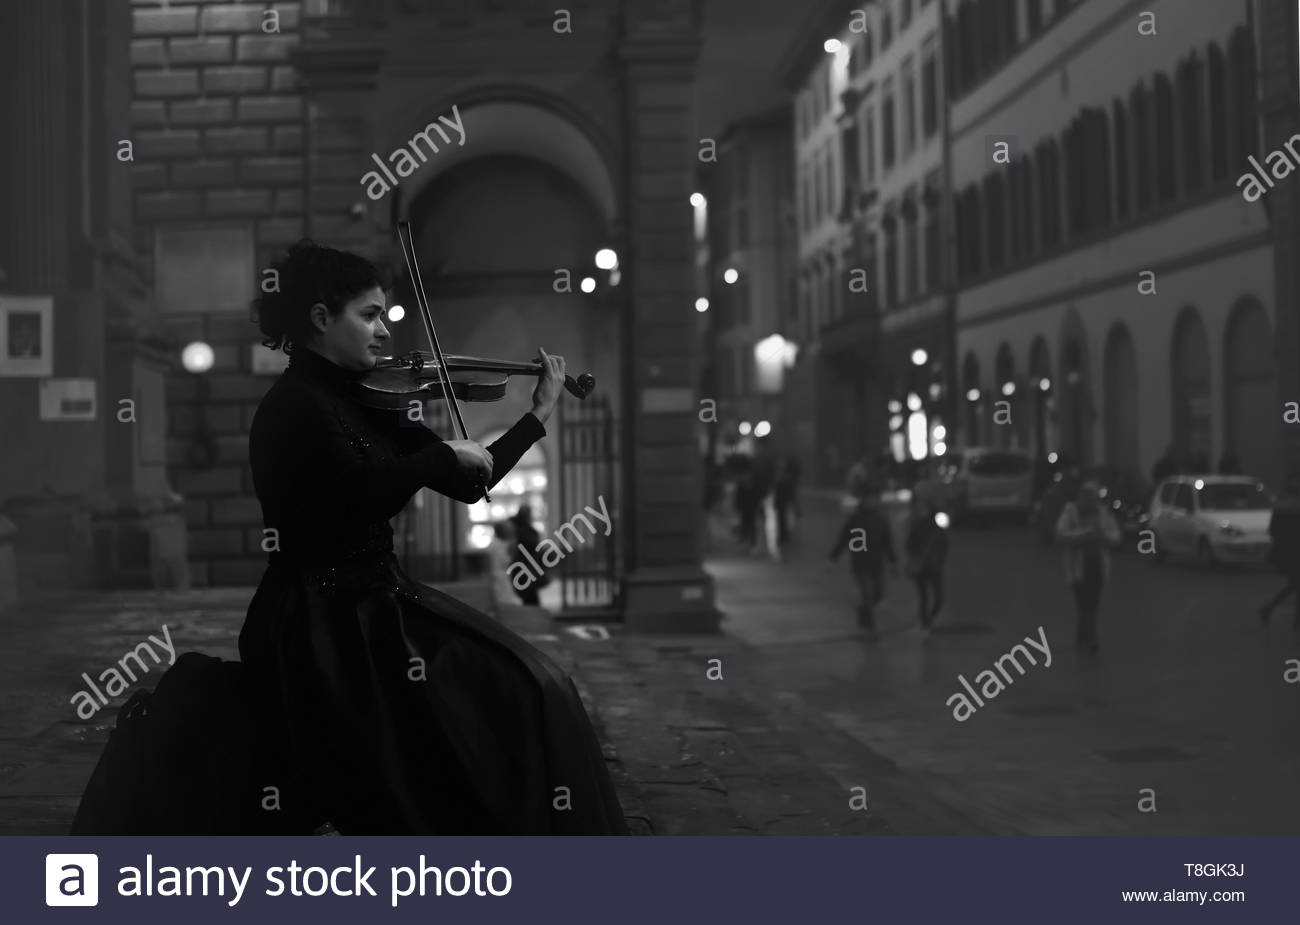 Florence by night. A street artist plays his violin. In the background a famous downtown street. Black and white photos. - Stock Image